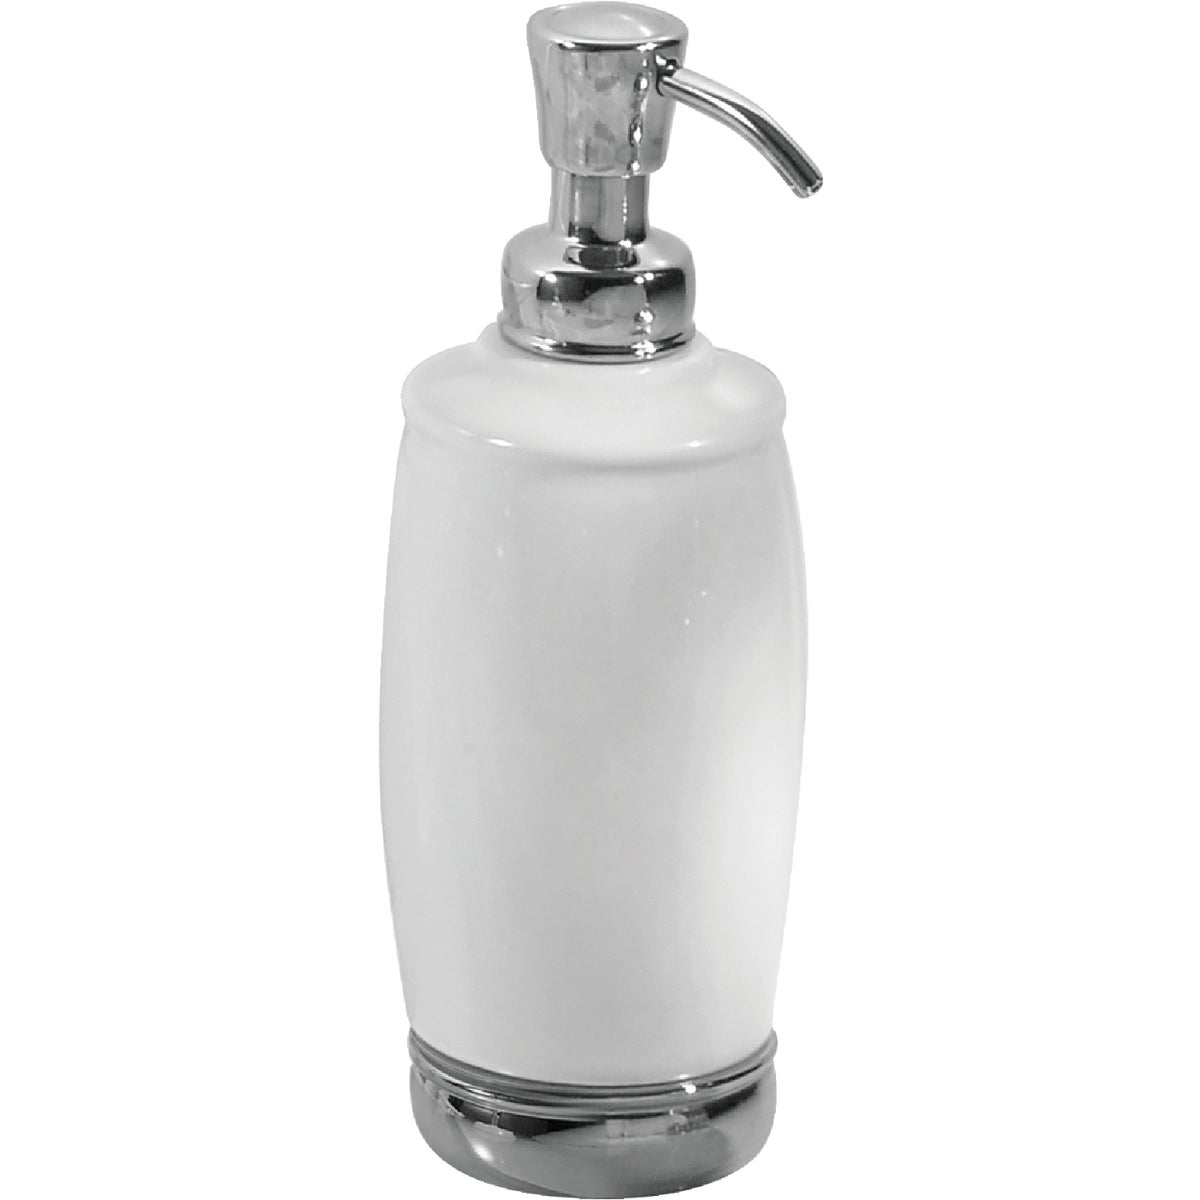 WH/CHR TALL SOAP PUMP - 75601 by Interdesign Inc